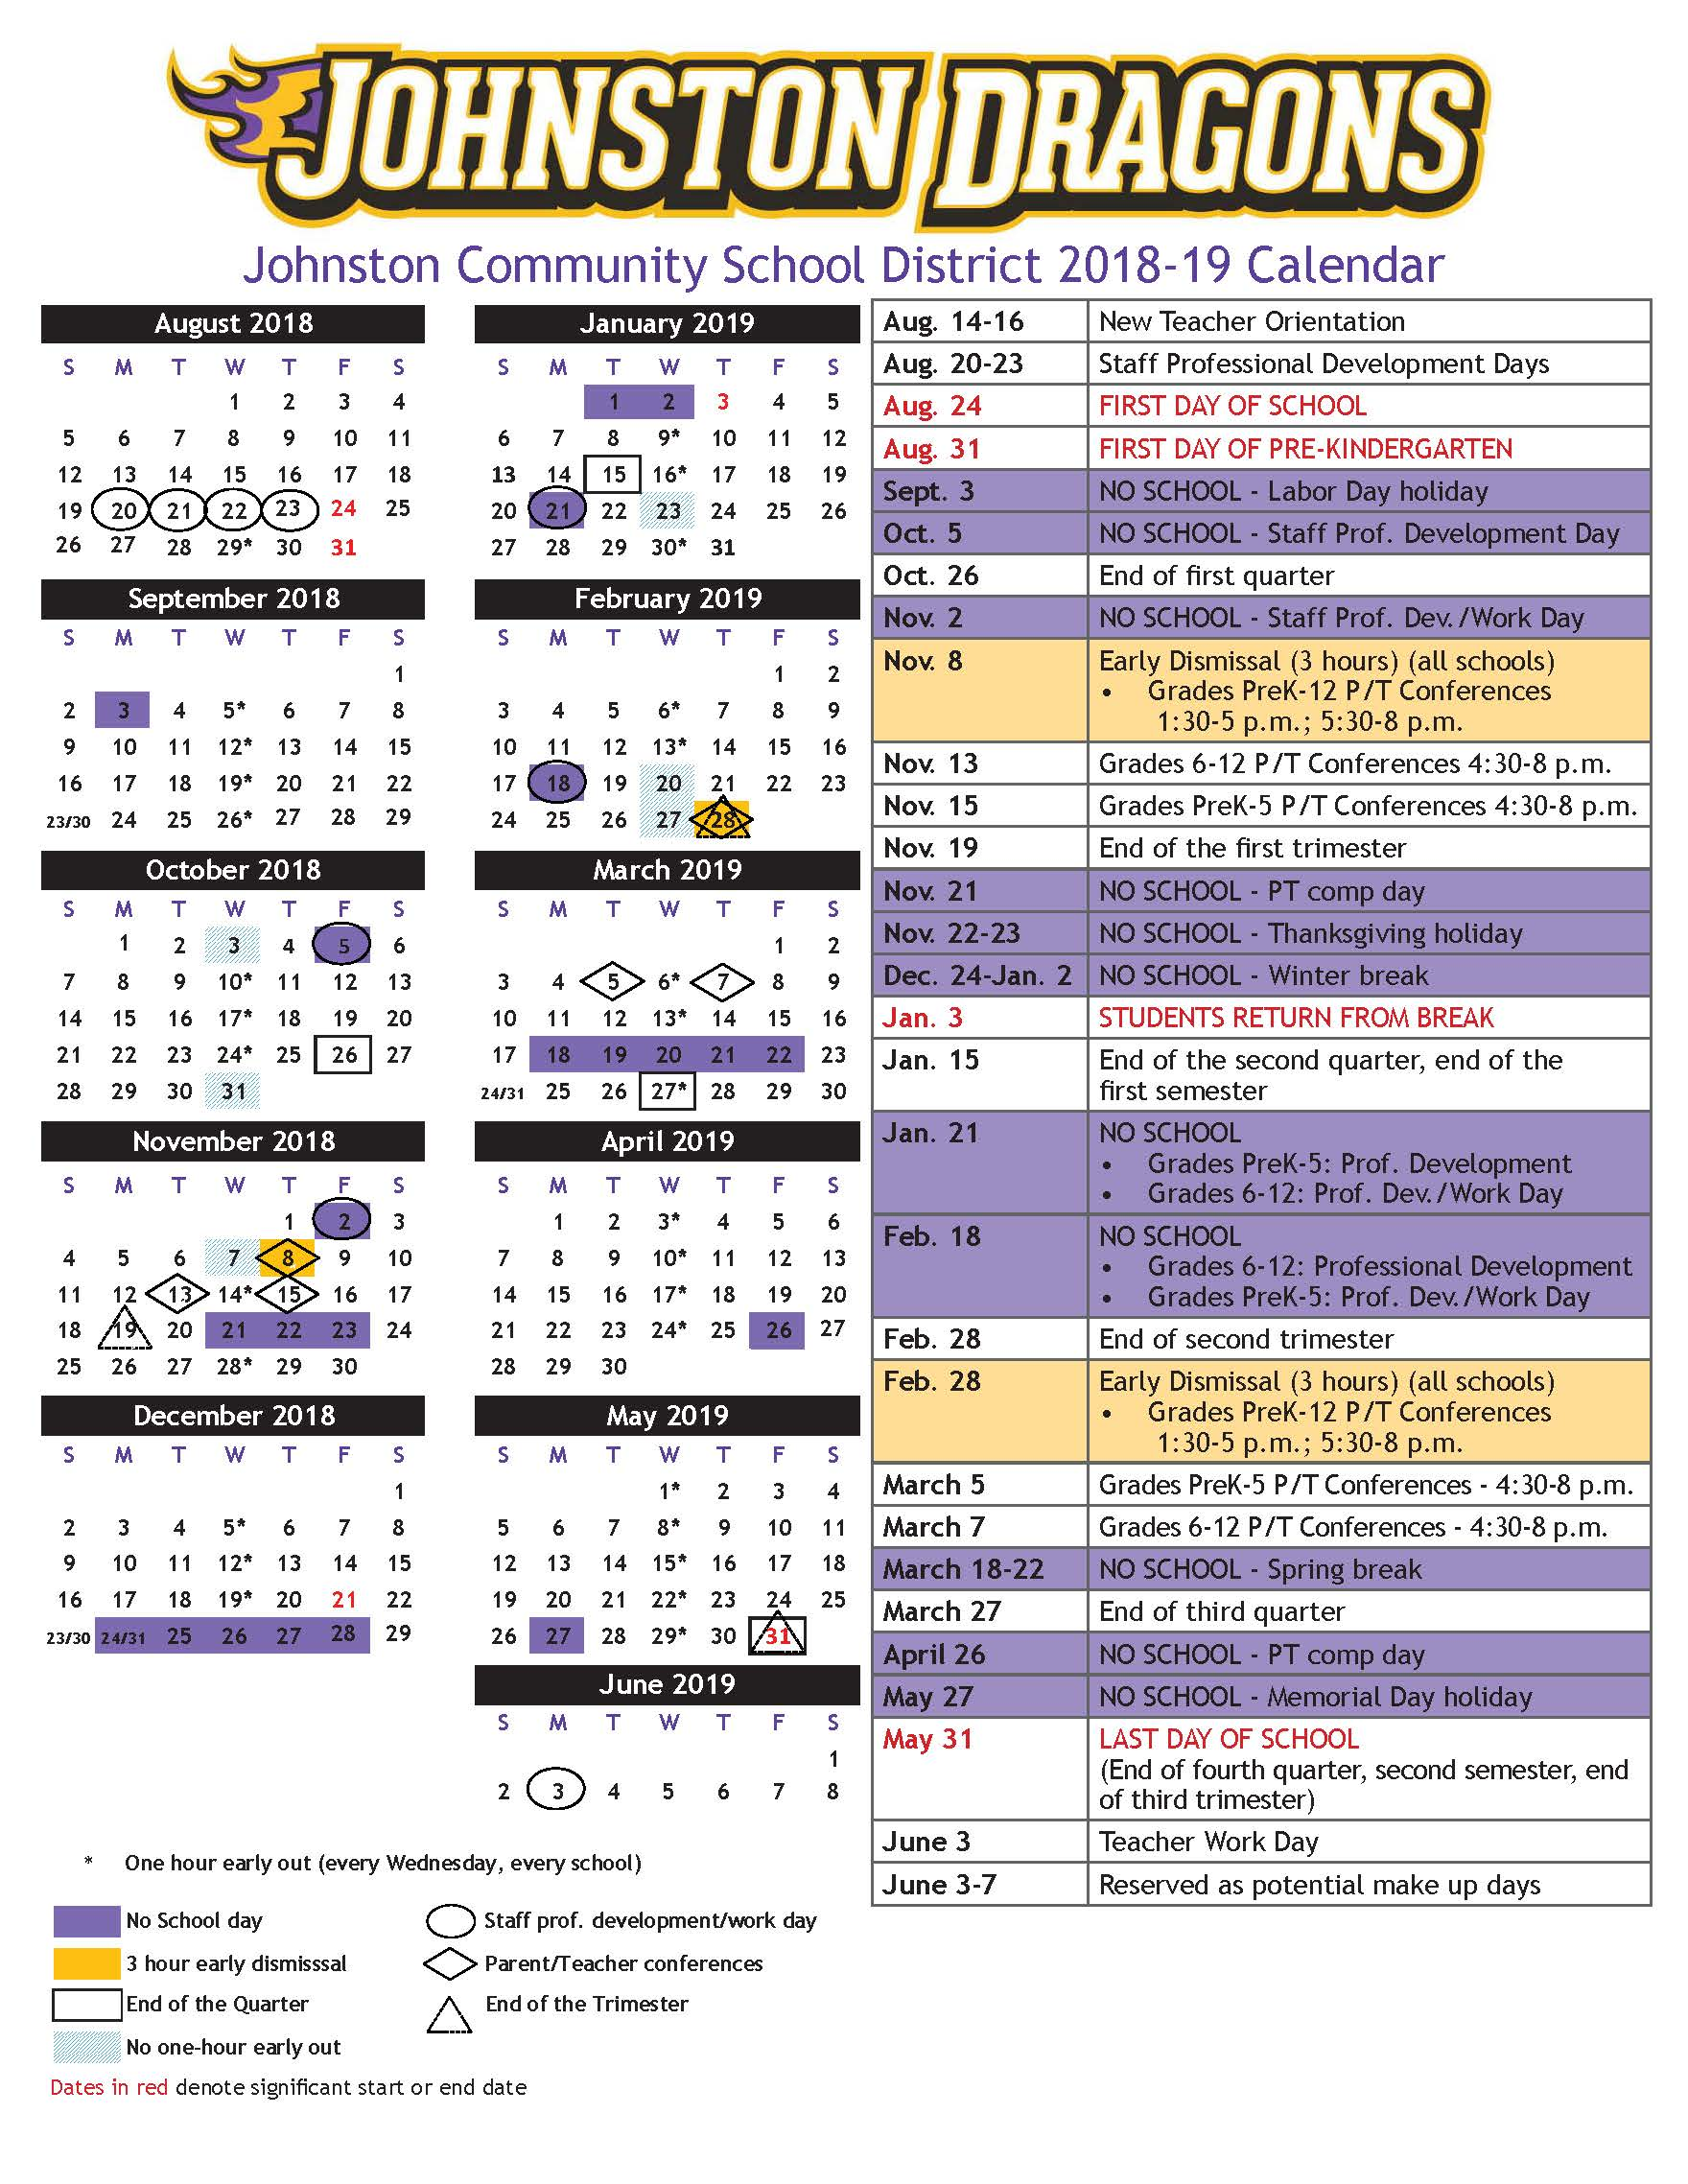 Yearly Calendars For Staff And Families 2018-19 Academic Calendar Image